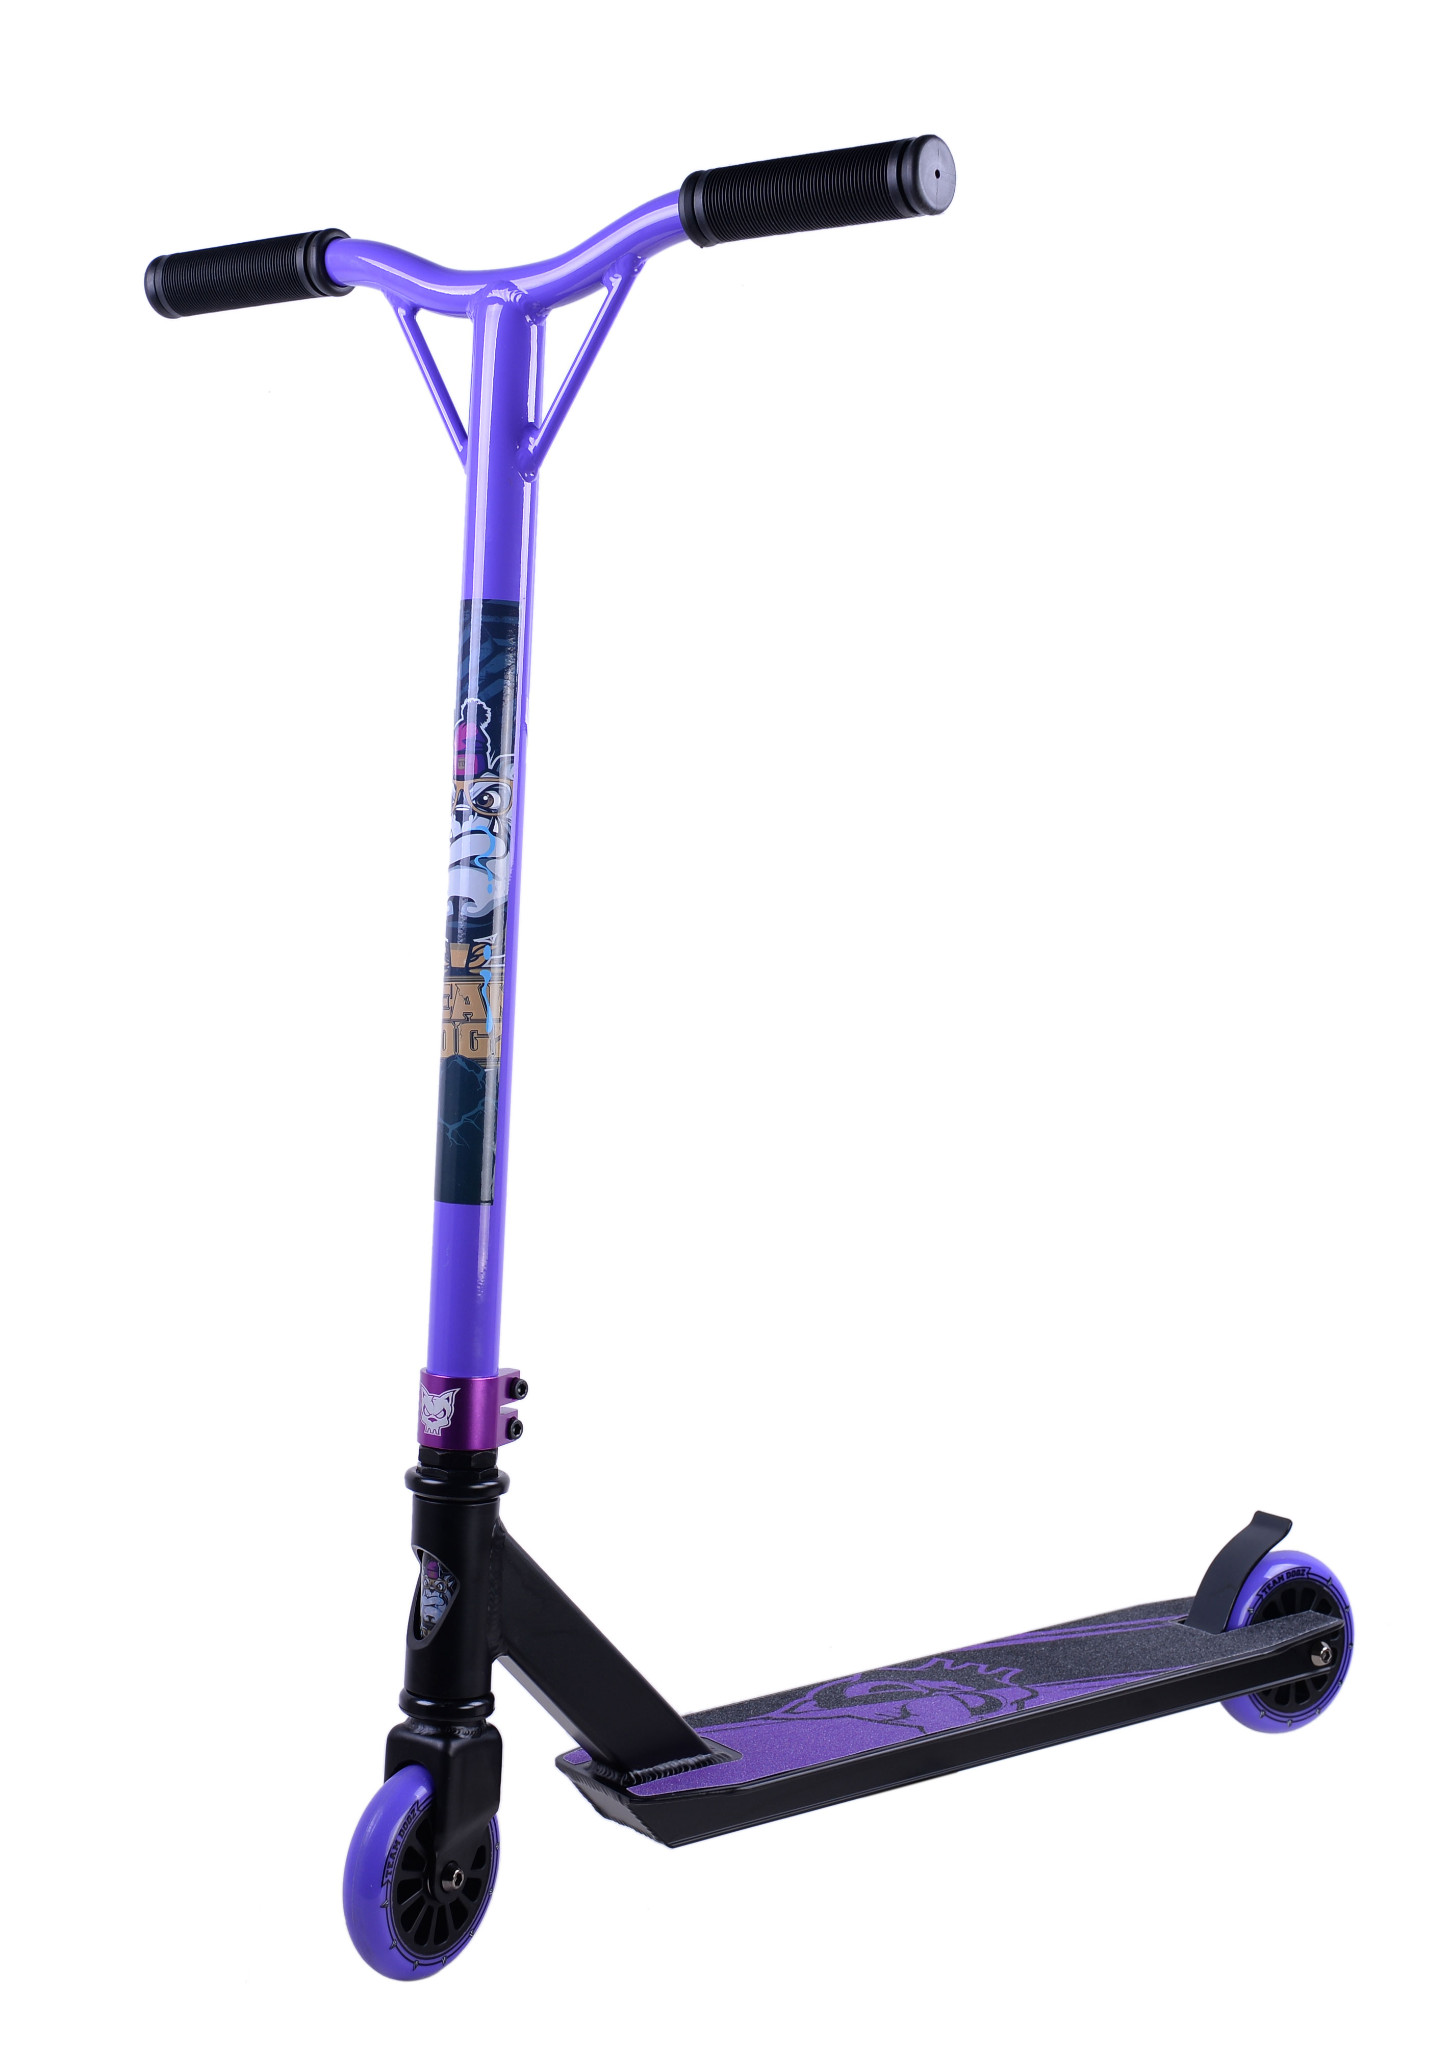 new x gen team dogz pro 3 stunt scooter 360 kids skate. Black Bedroom Furniture Sets. Home Design Ideas